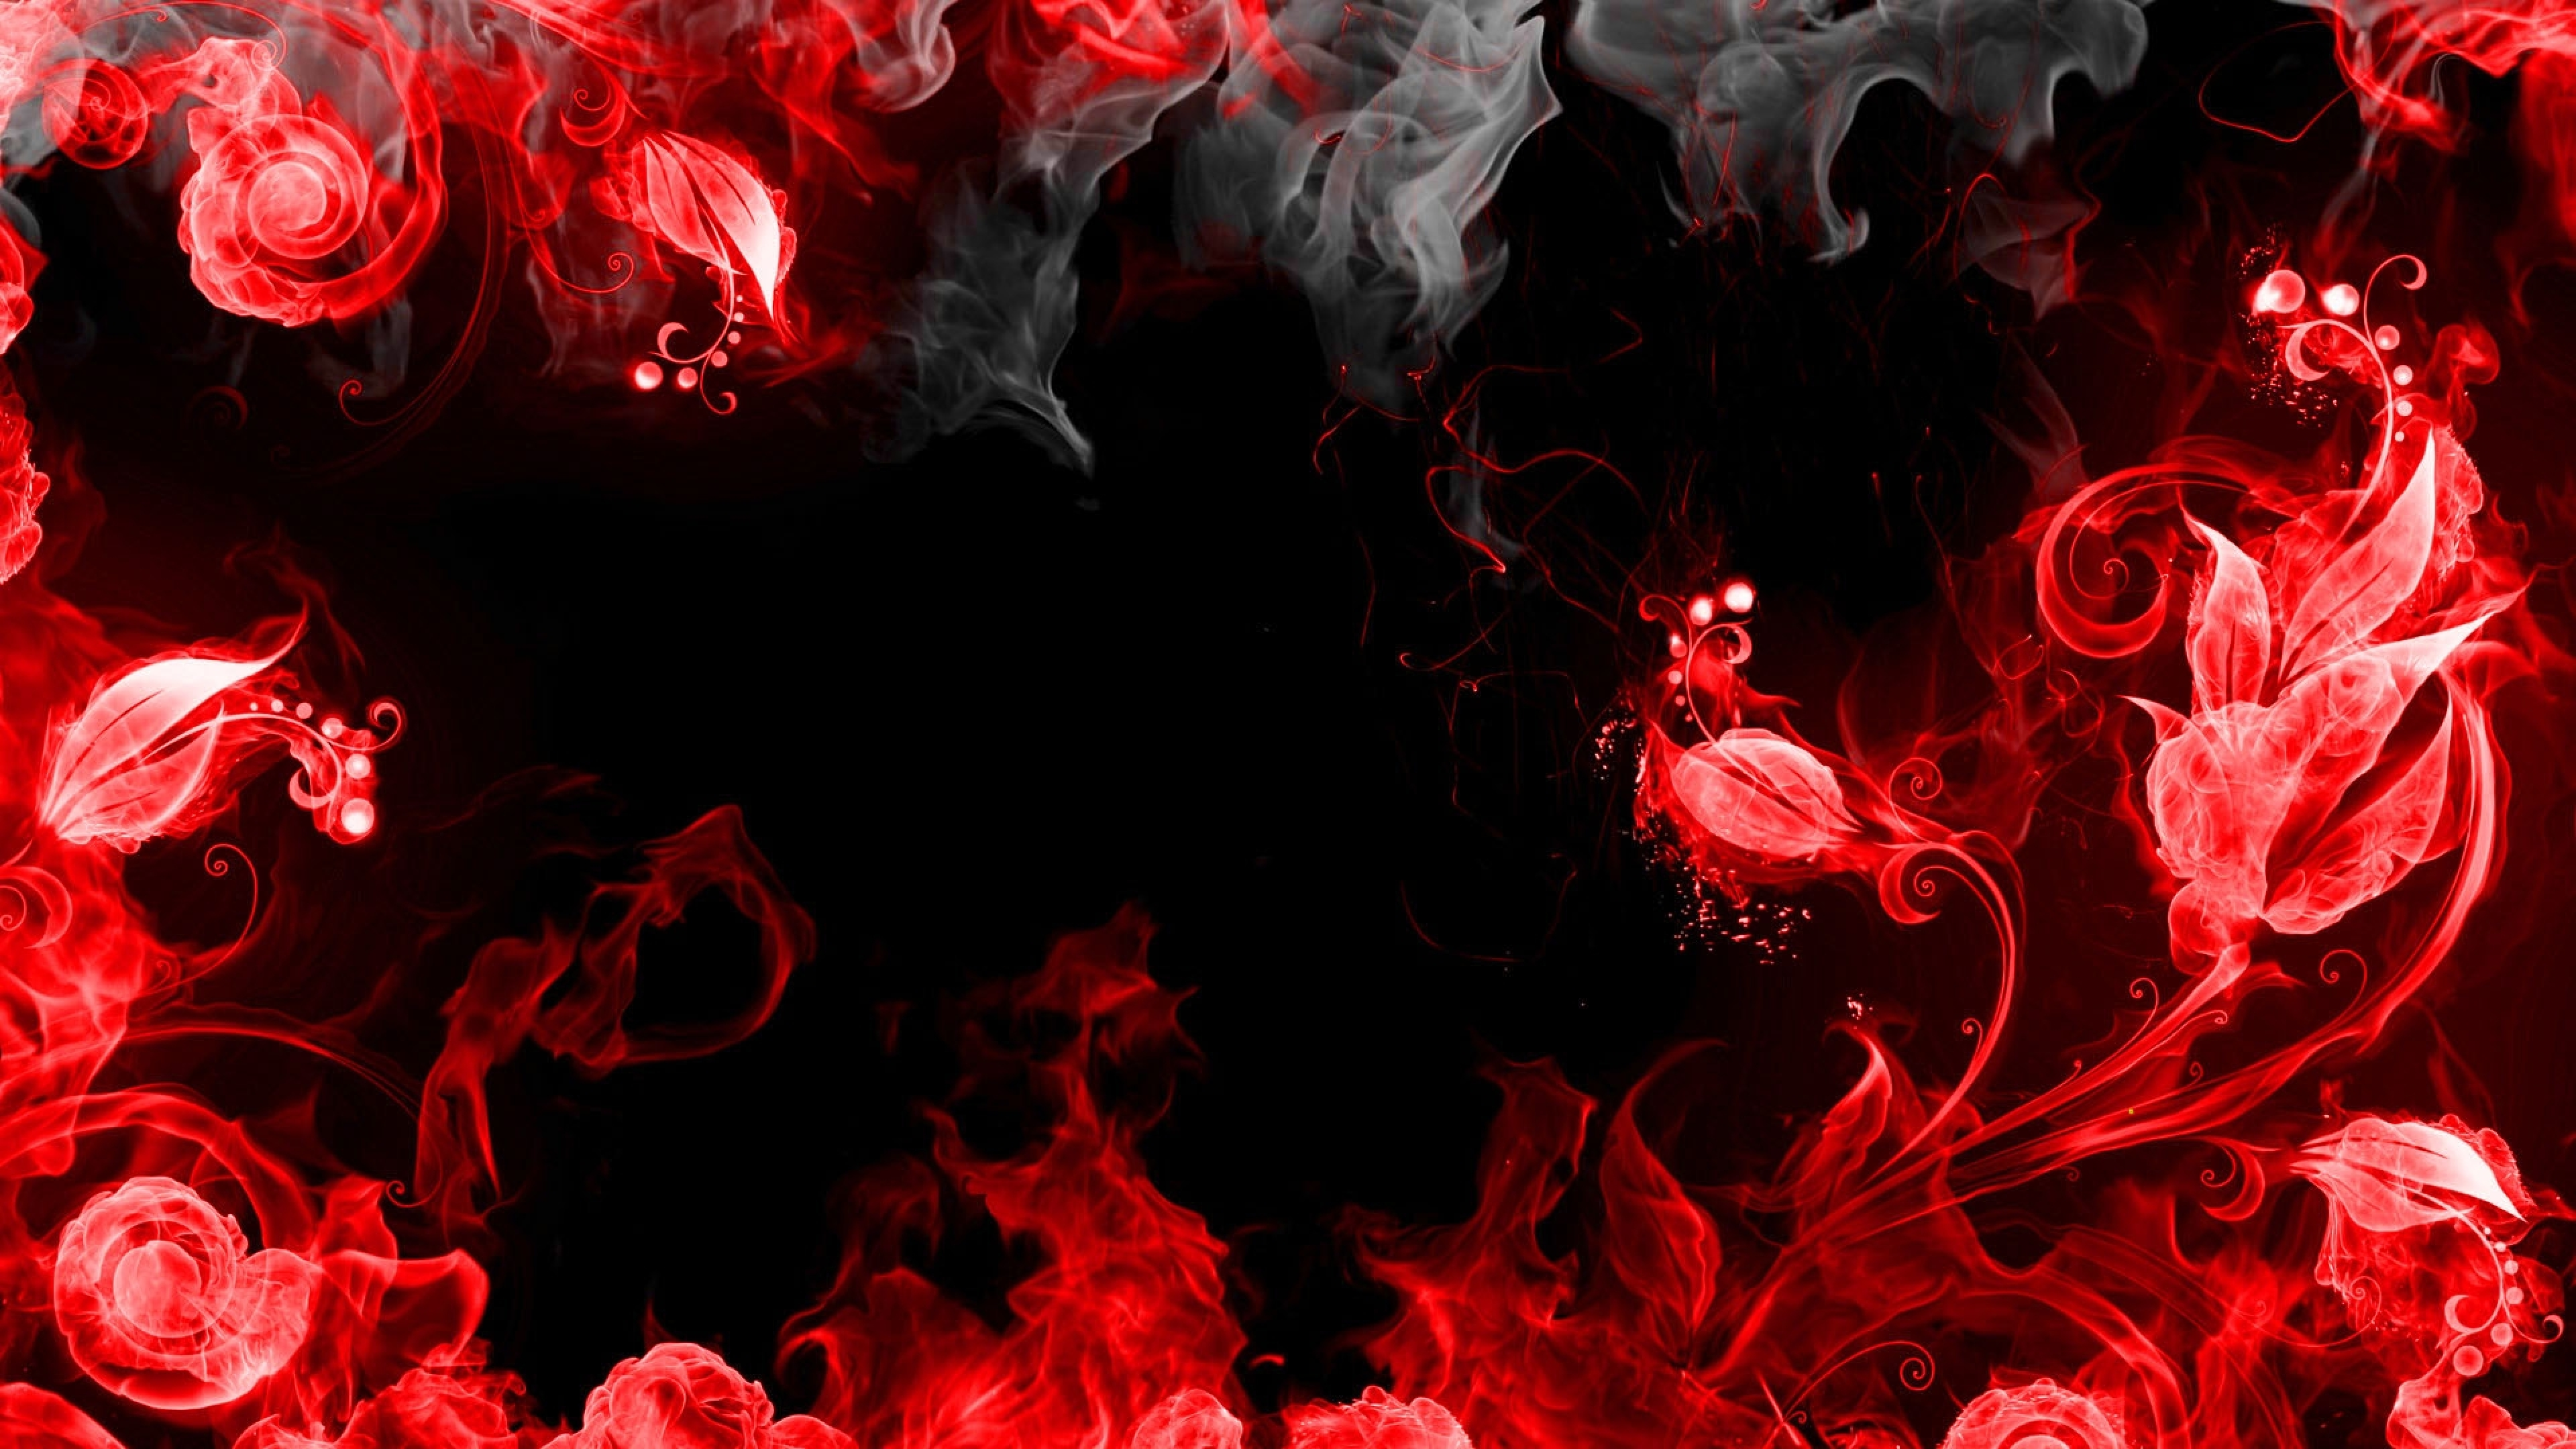 3840x2160 Abstraction Red Smoke 4k Wallpaper Hd Abstract 4k